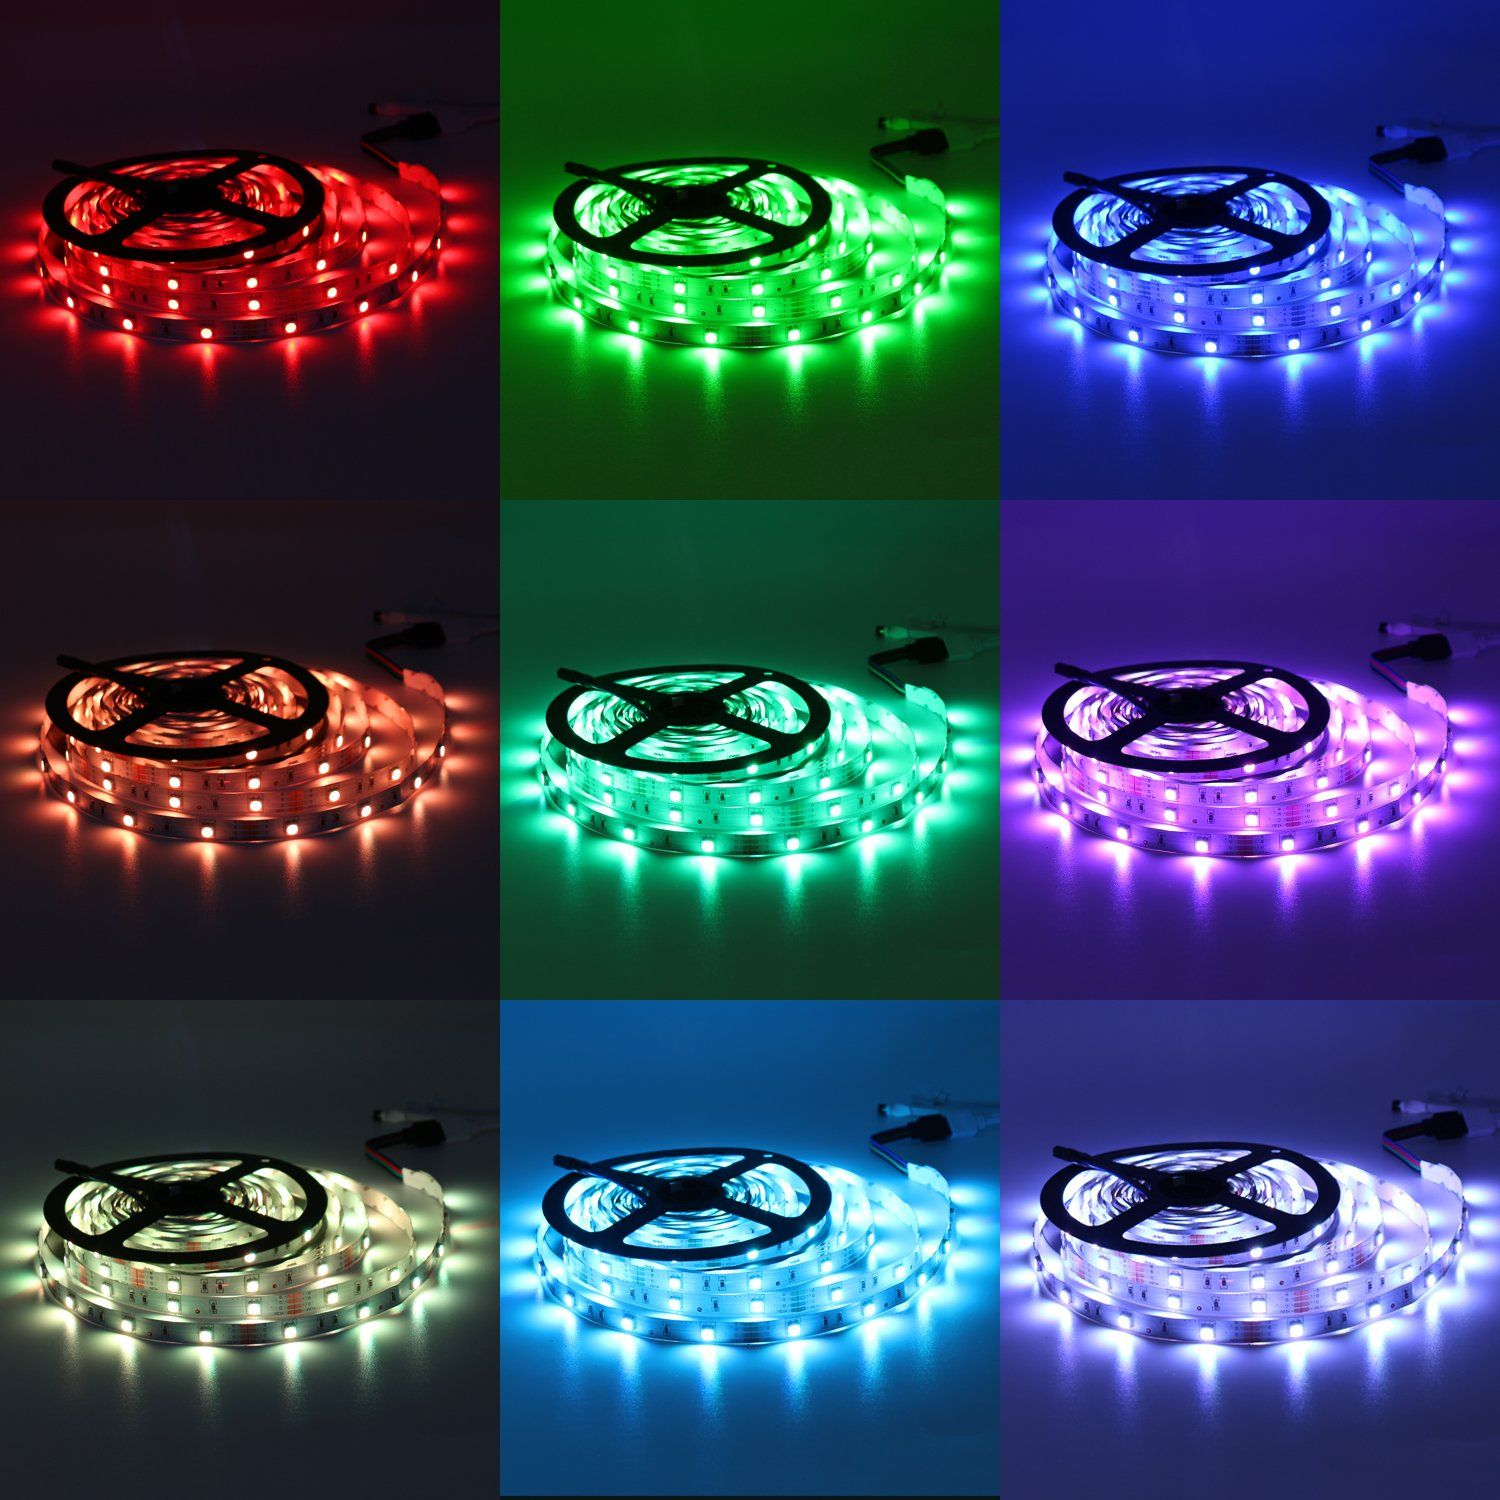 Led Strip Lights Kit A 32 8ft 300 Leds Smd 5050 Rgb Light With 44 Key Remote Controller And Power Adap Led Strip Lighting Strip Lighting Rgb Led Strip Lights